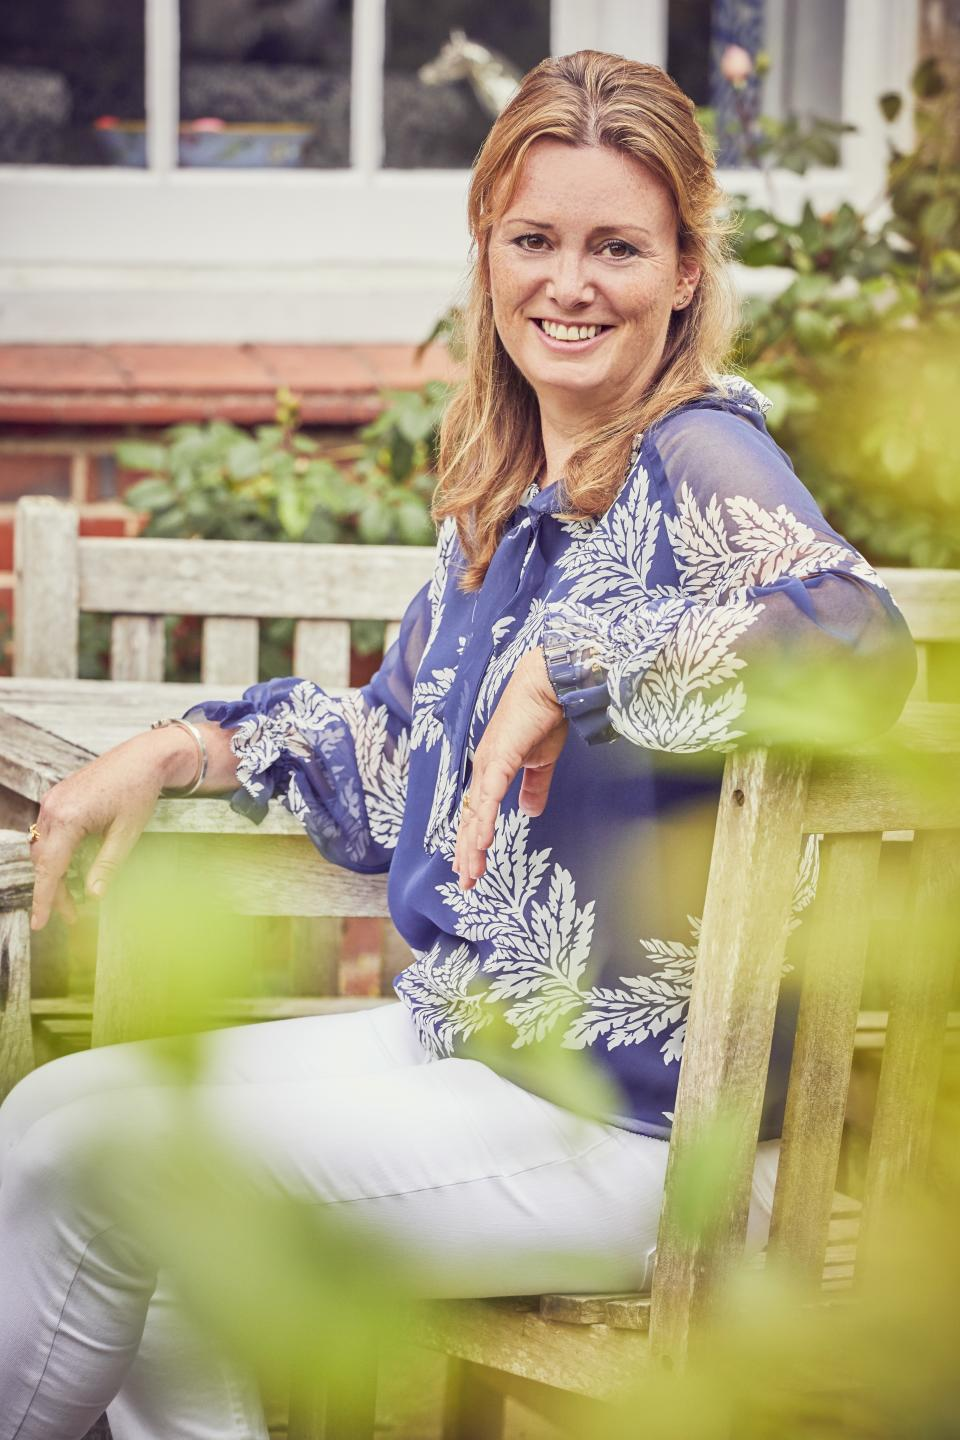 Childs Farm founder Joanna Jensen said self-employed and freelancers need support 'right now' (Childs Farm/PA)